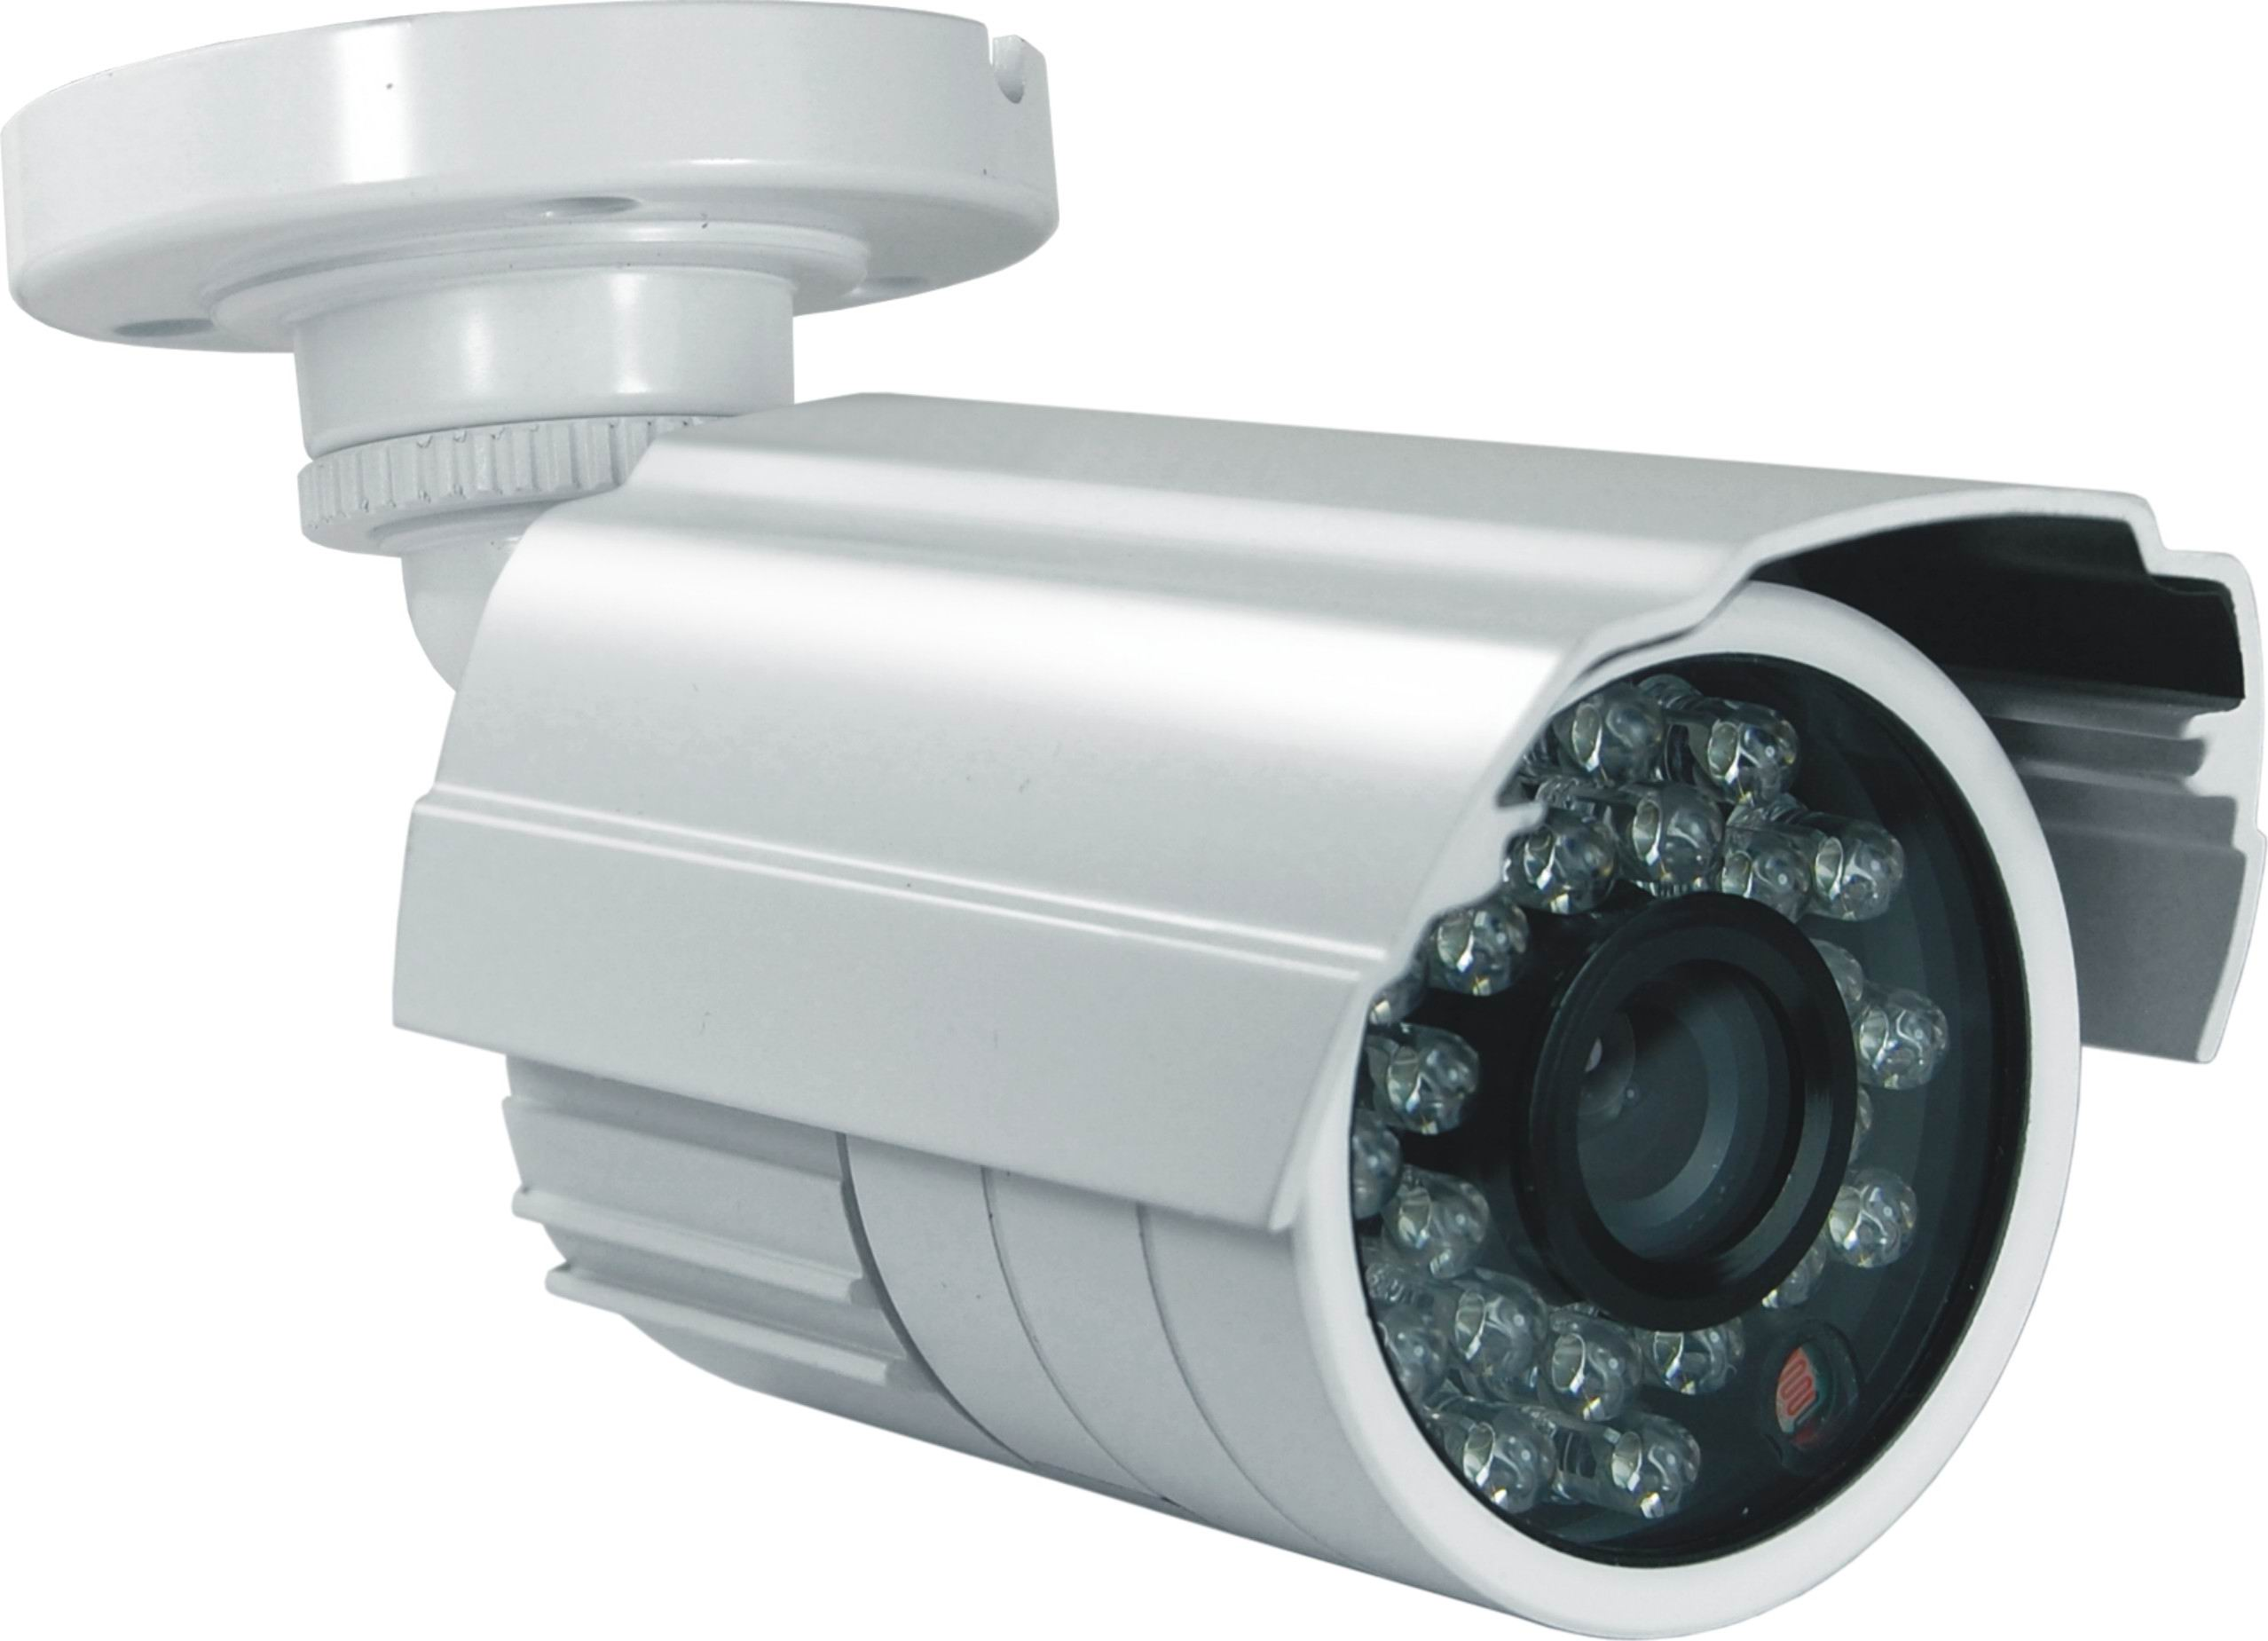 Outdoor Home Security Camera Kit